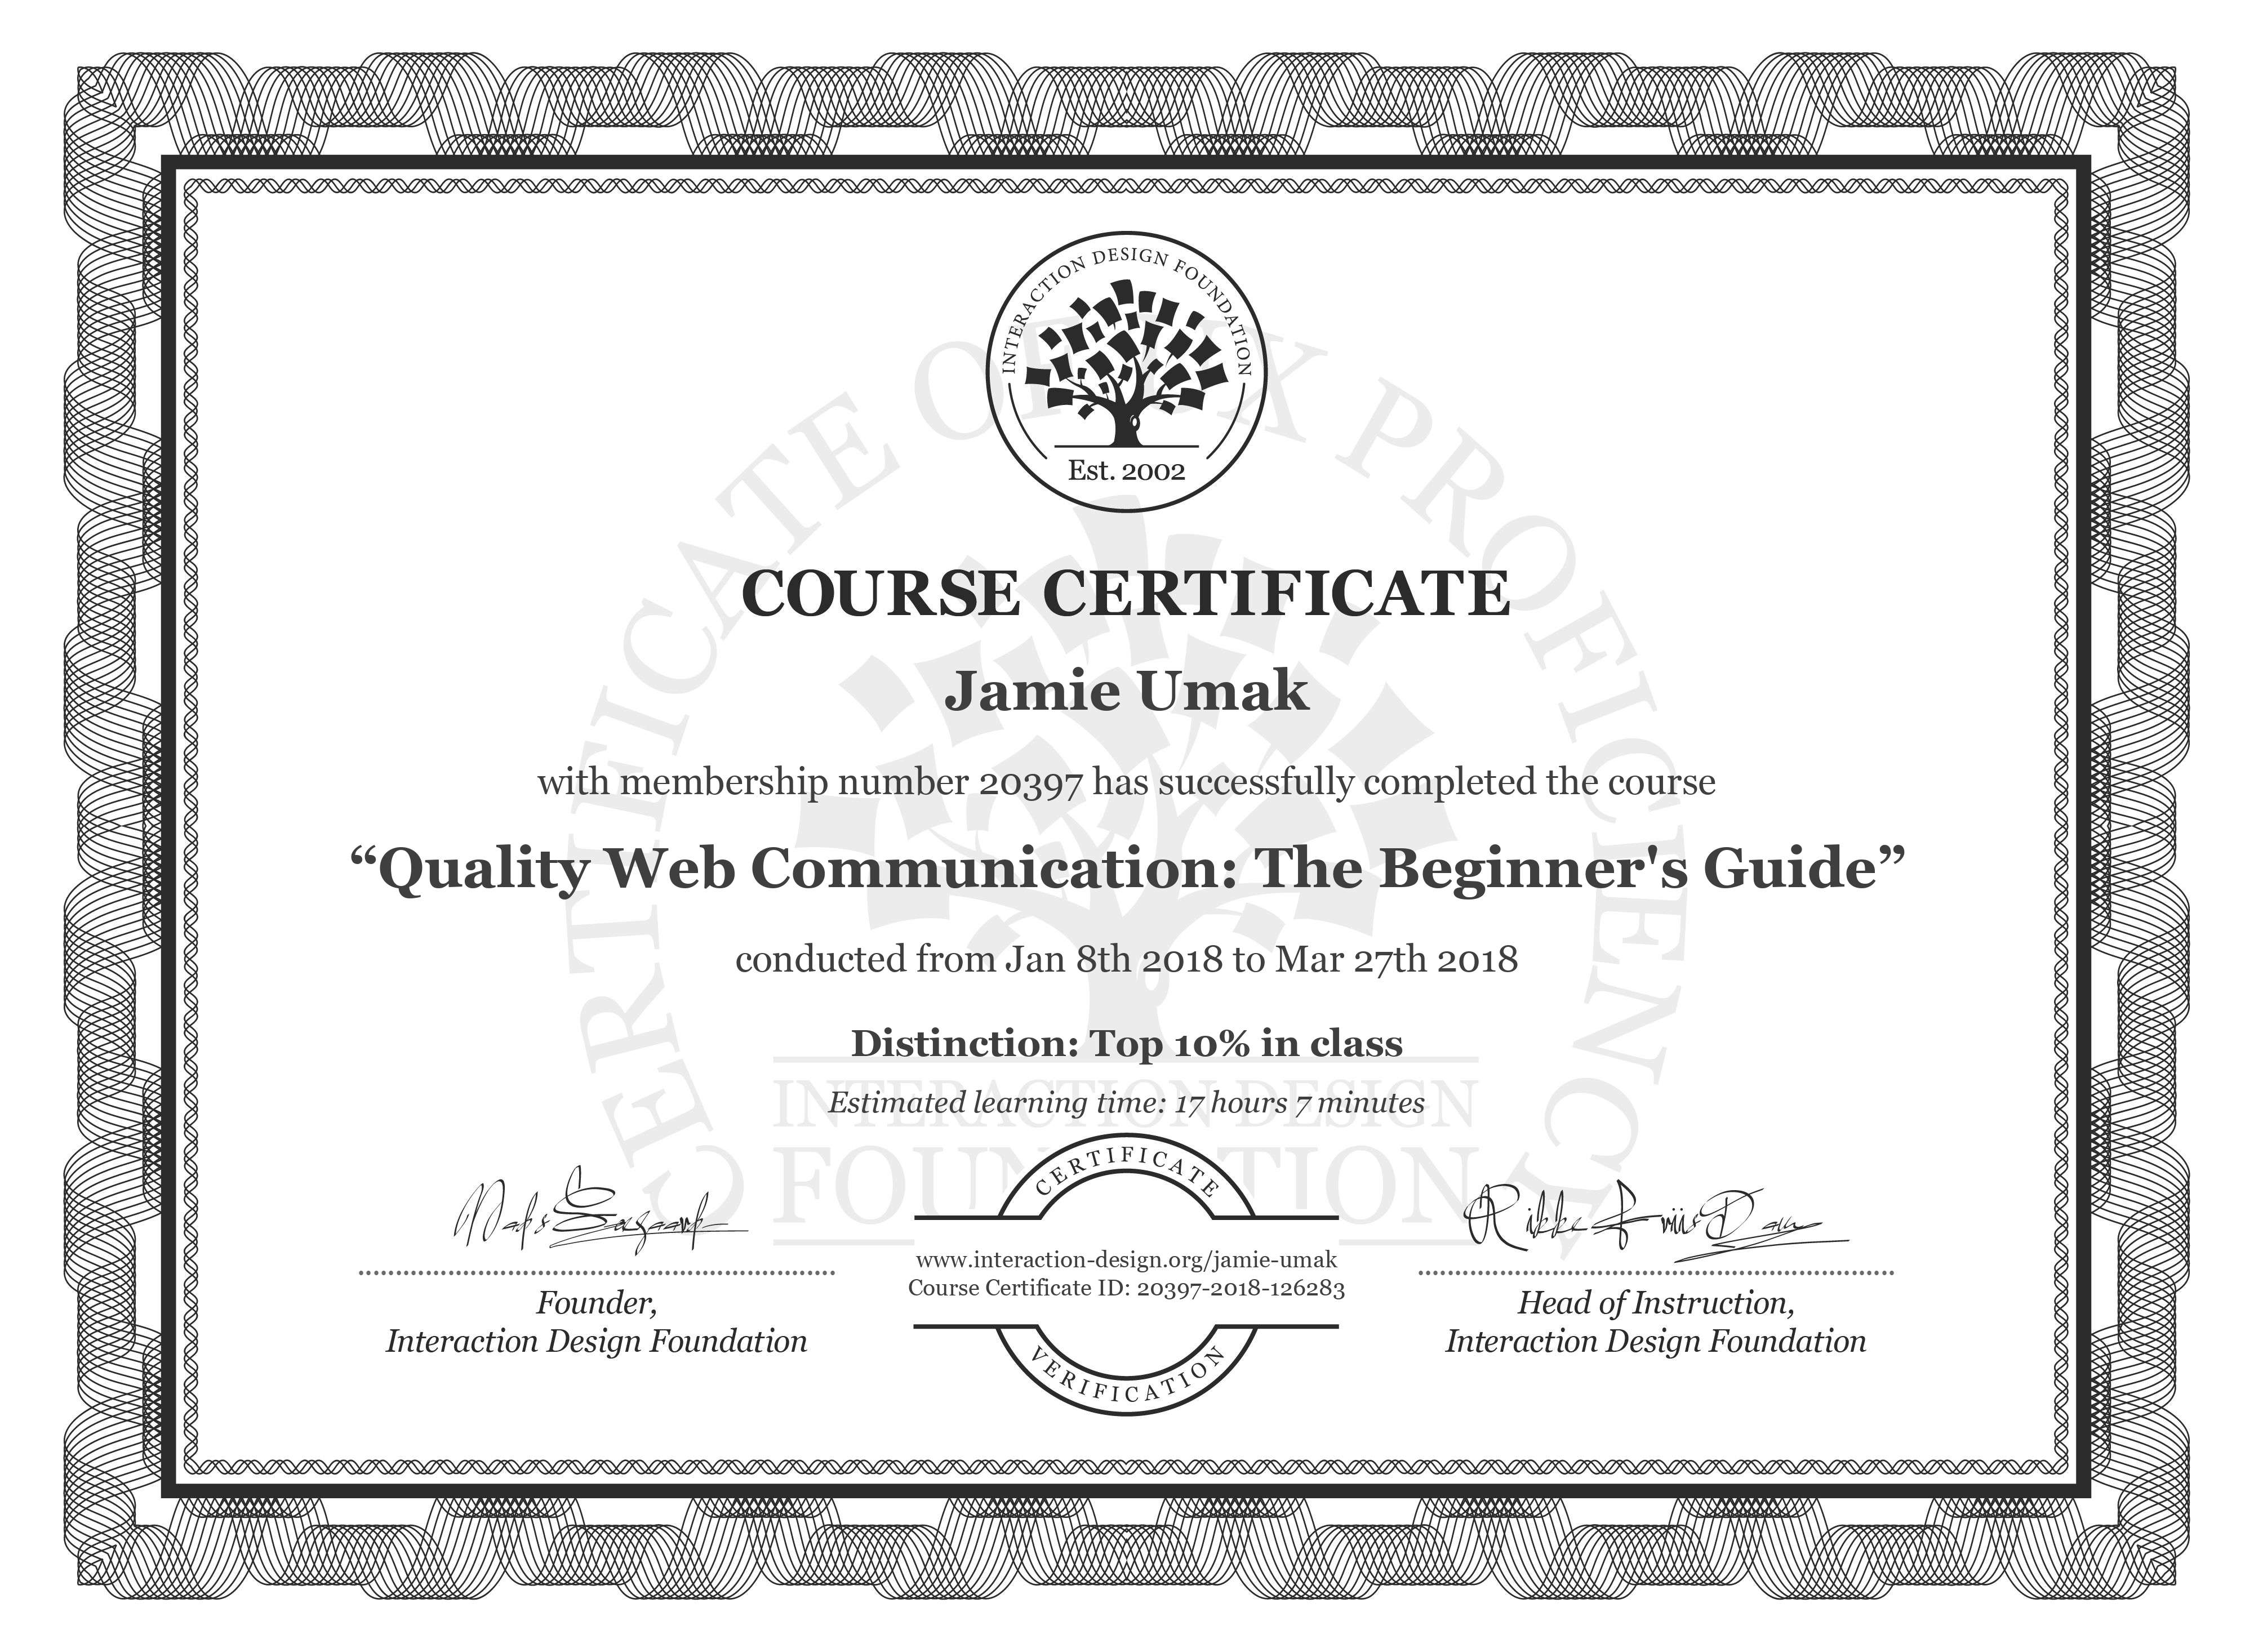 Jamie Umak: Course Certificate - Quality Web Communication: The Beginner's Guide